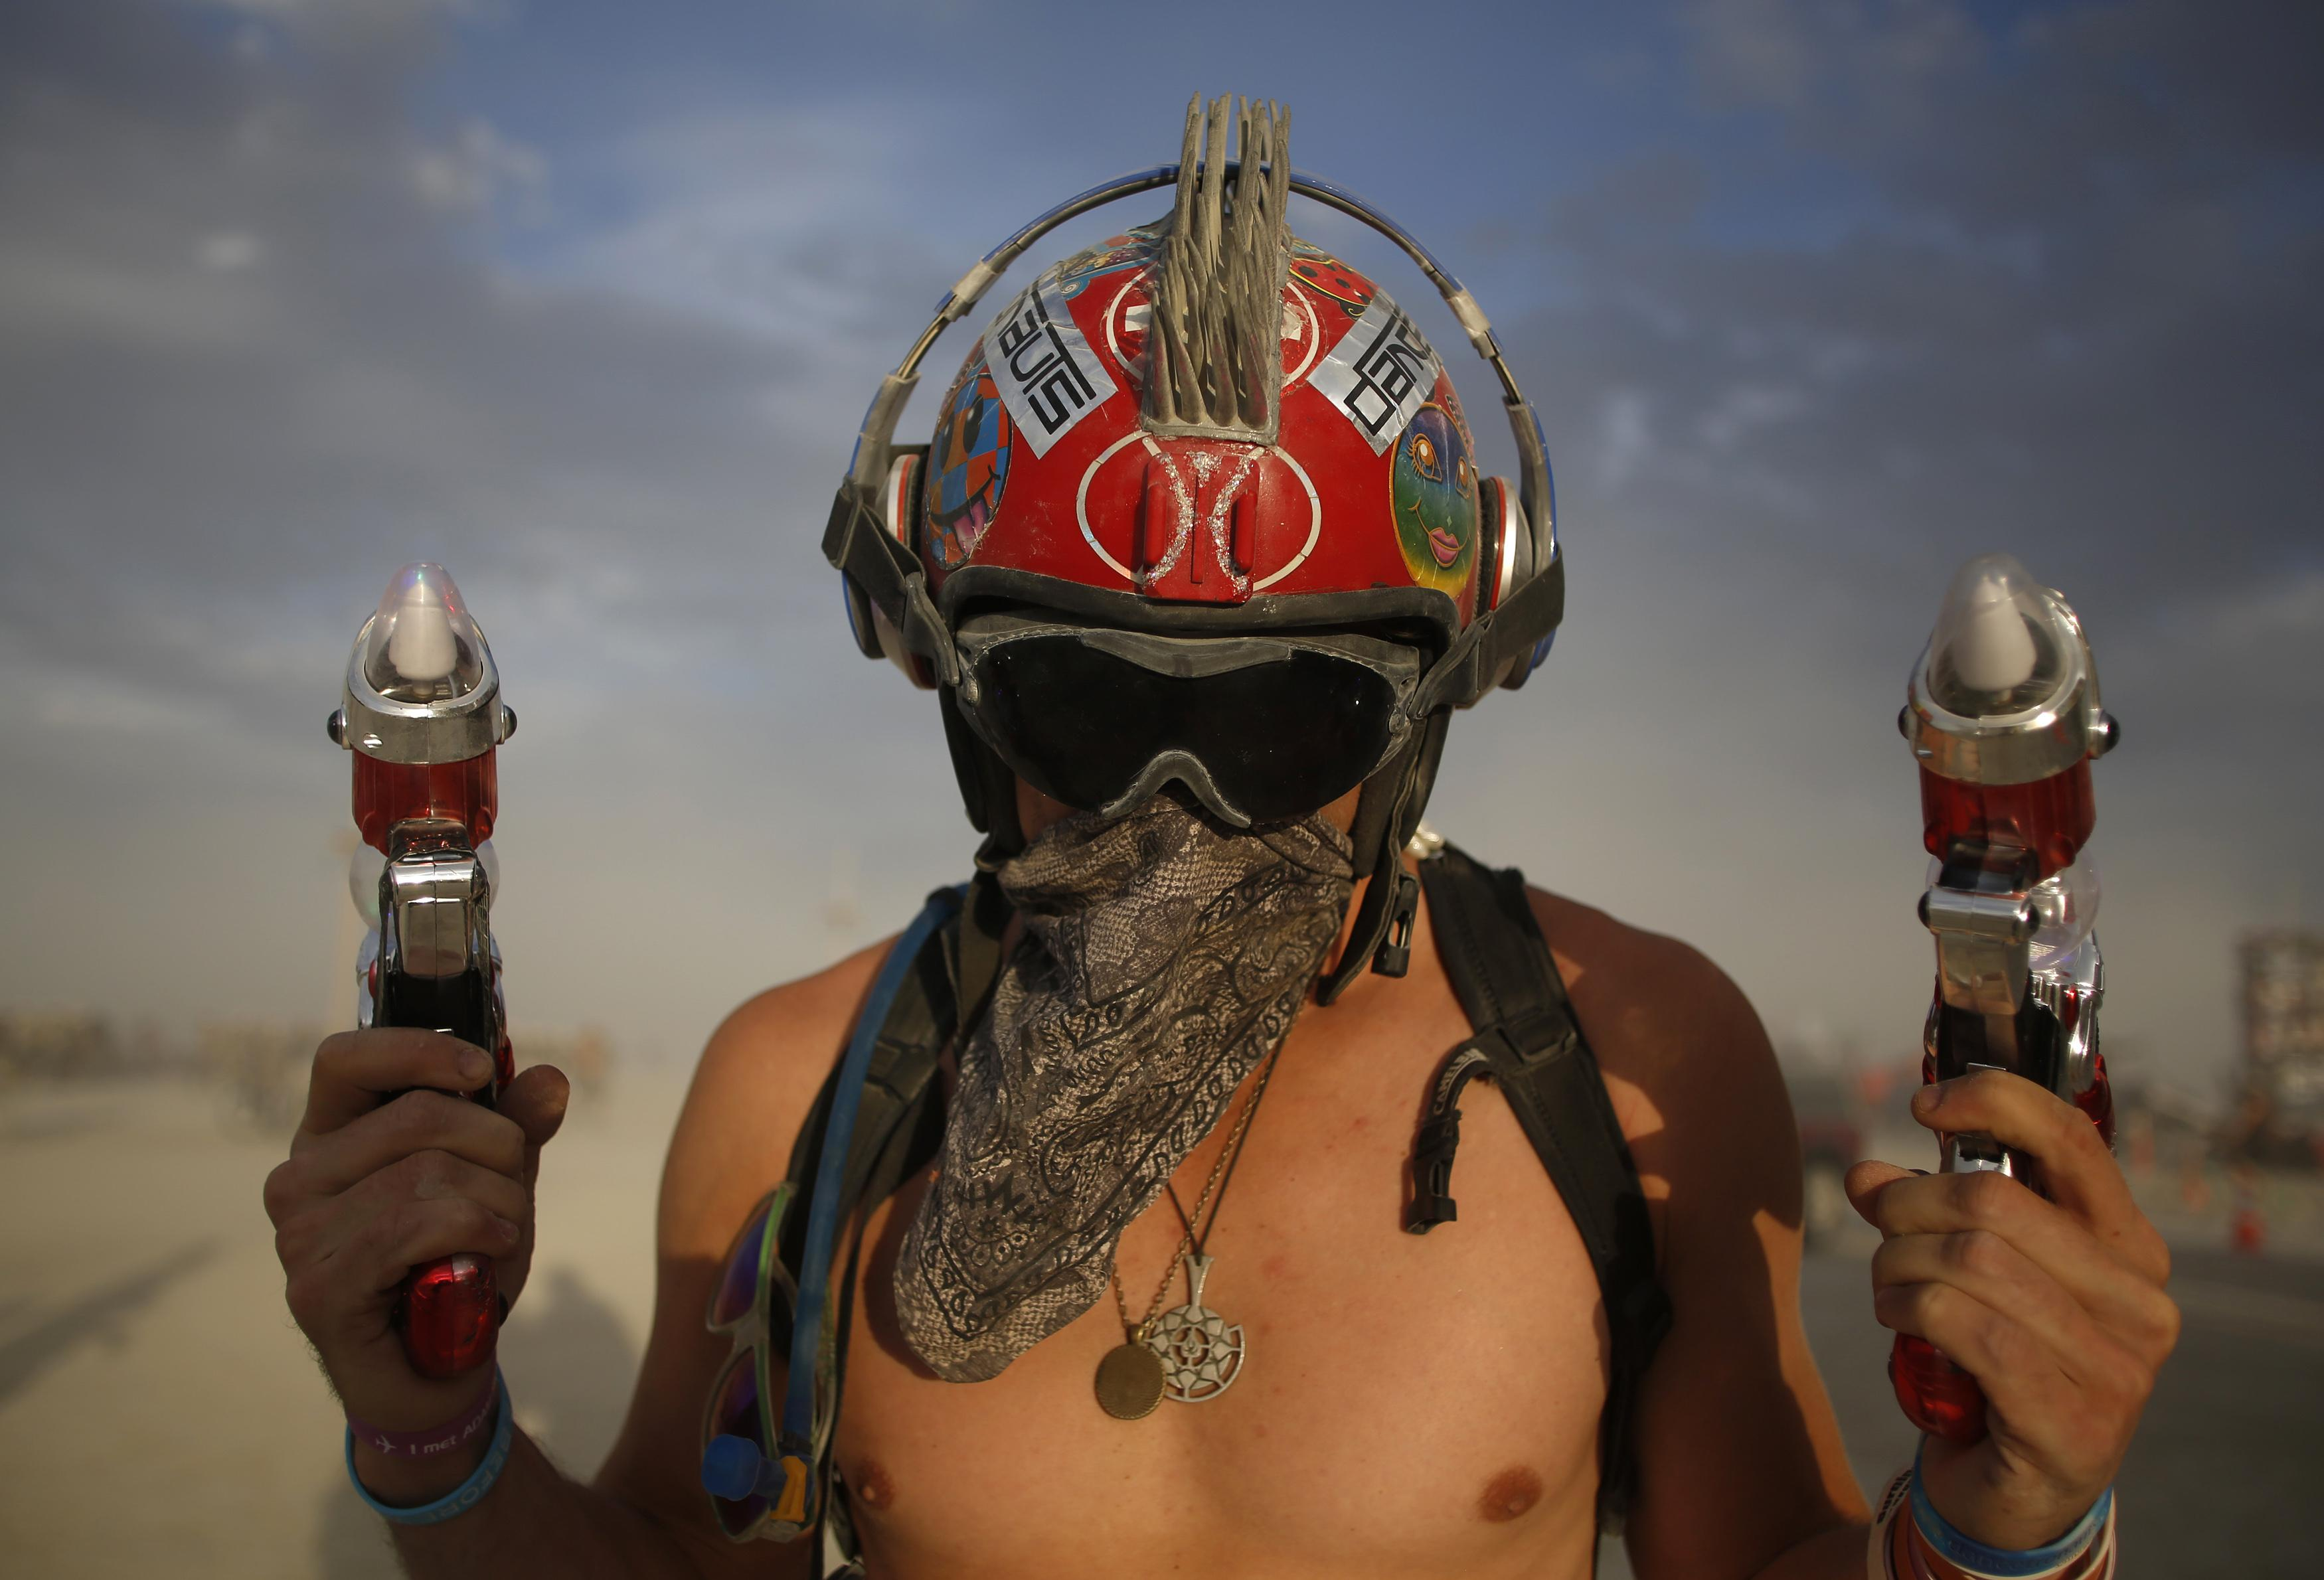 Burning Man 2015 photos: Spectacular pictures of annual